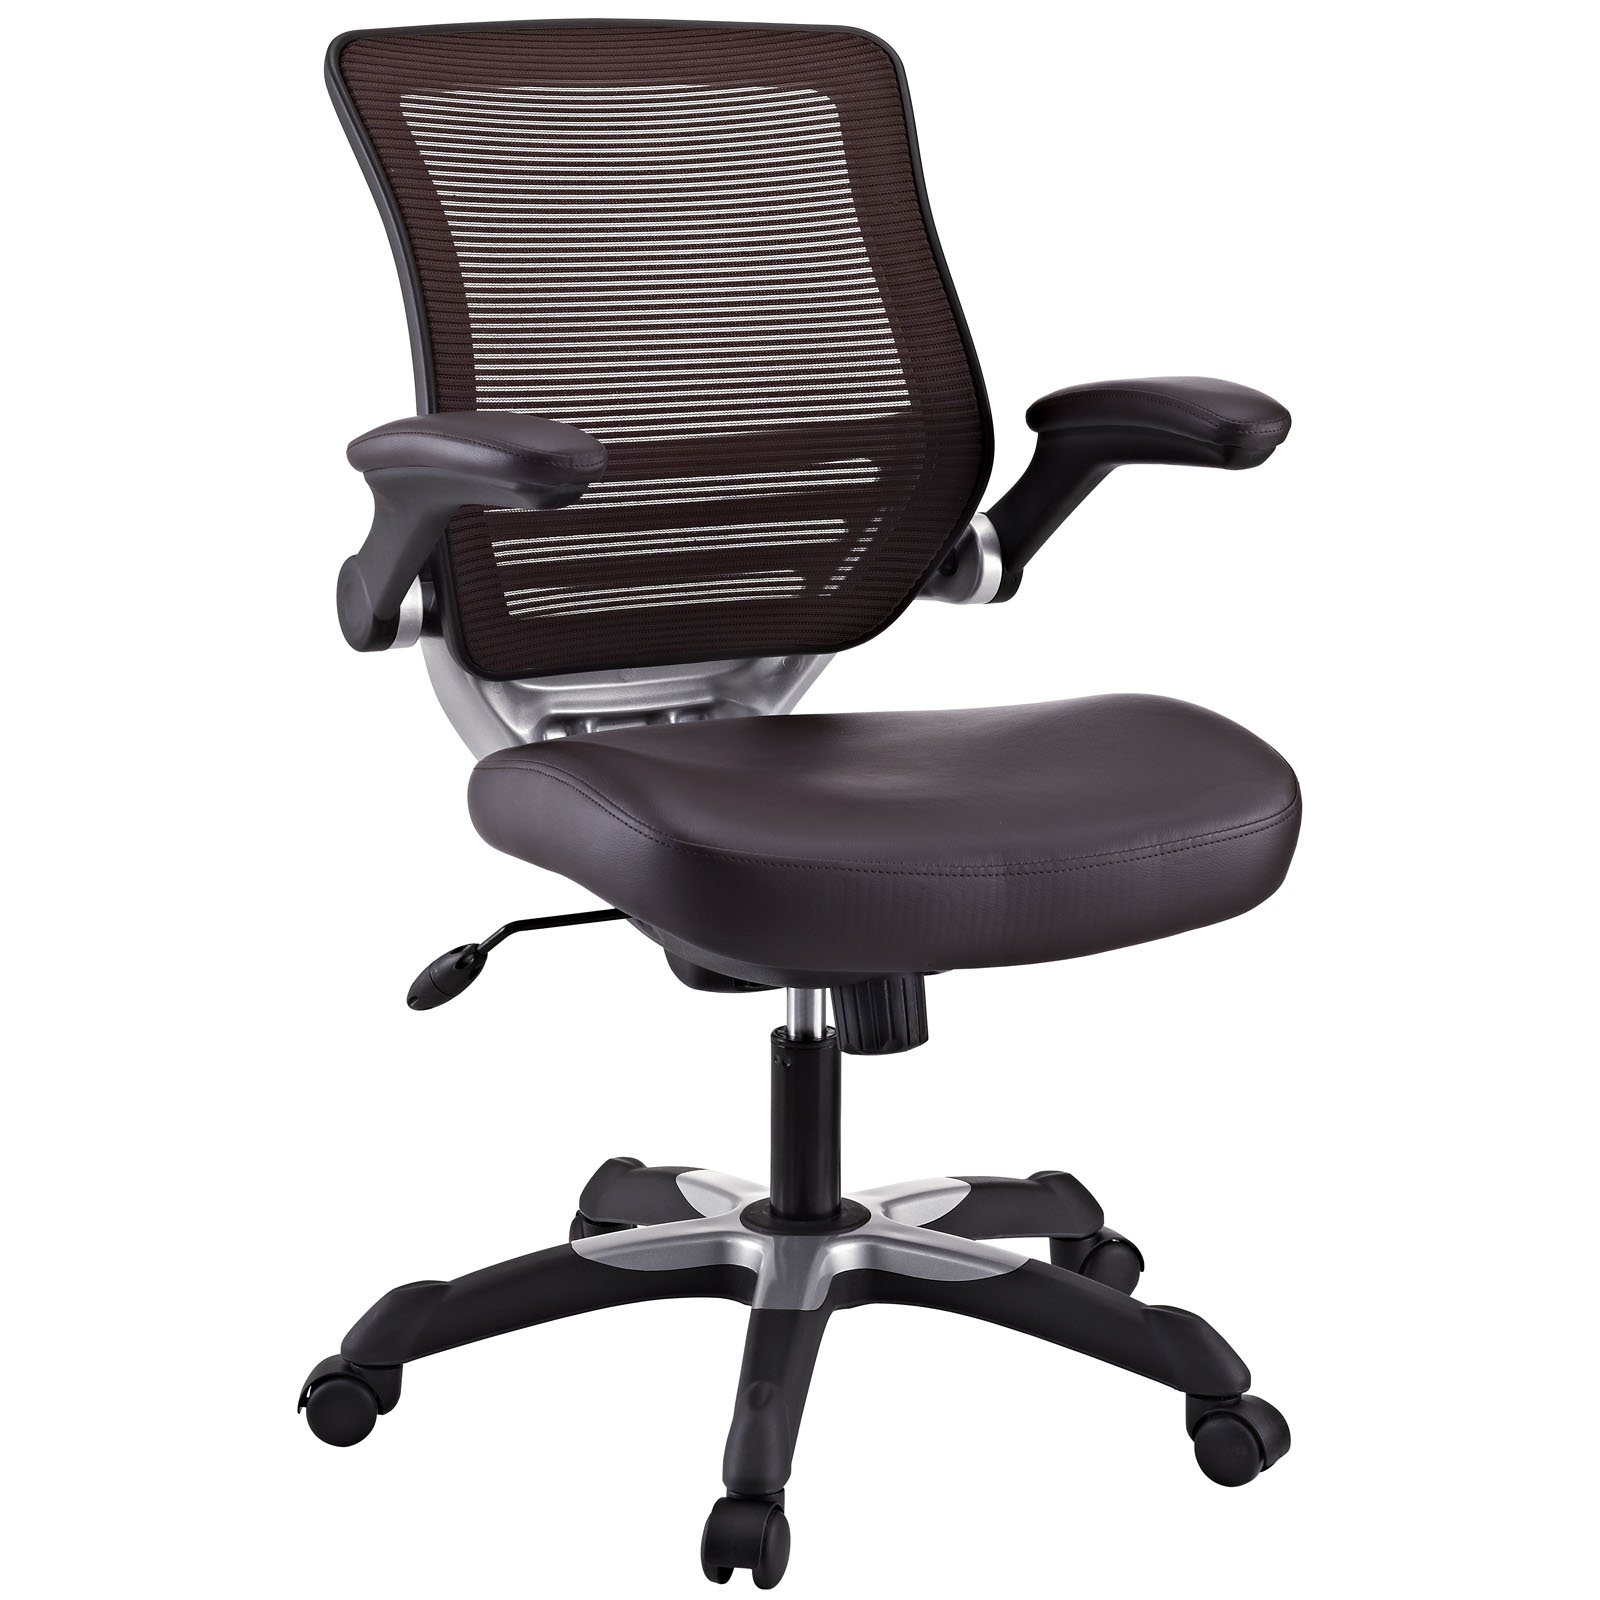 Modway Edge Mesh Back and Brown Vinyl Seat Office Chair With Flip-Up Arms - Ergonomic Desk And Computer Chair